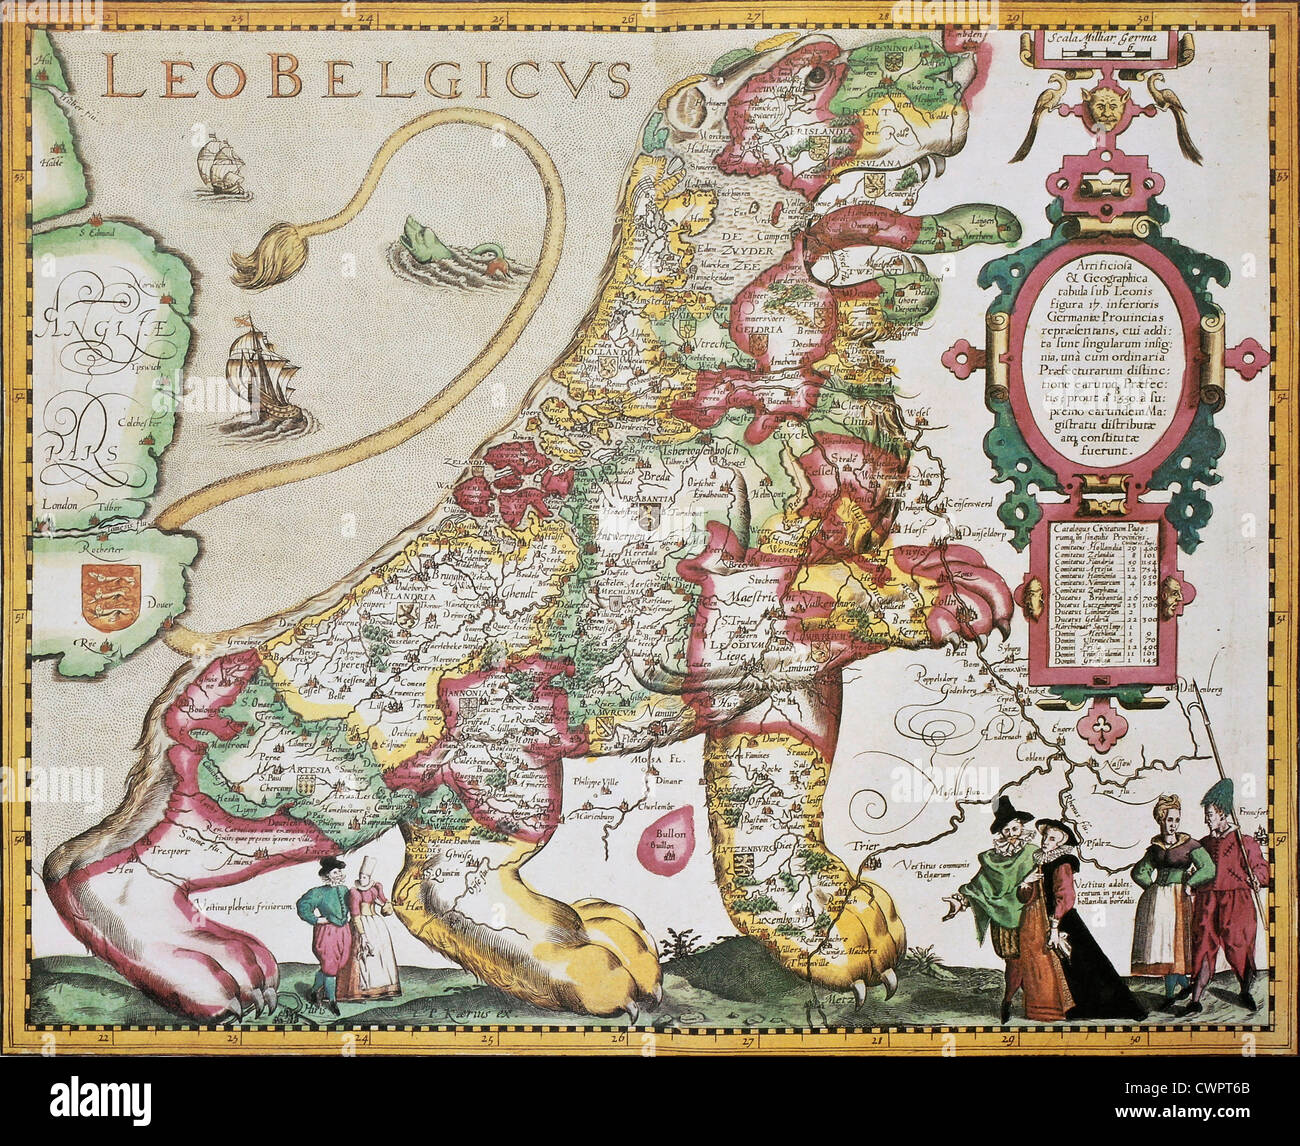 belgium and netherlands old map in the form of a lion